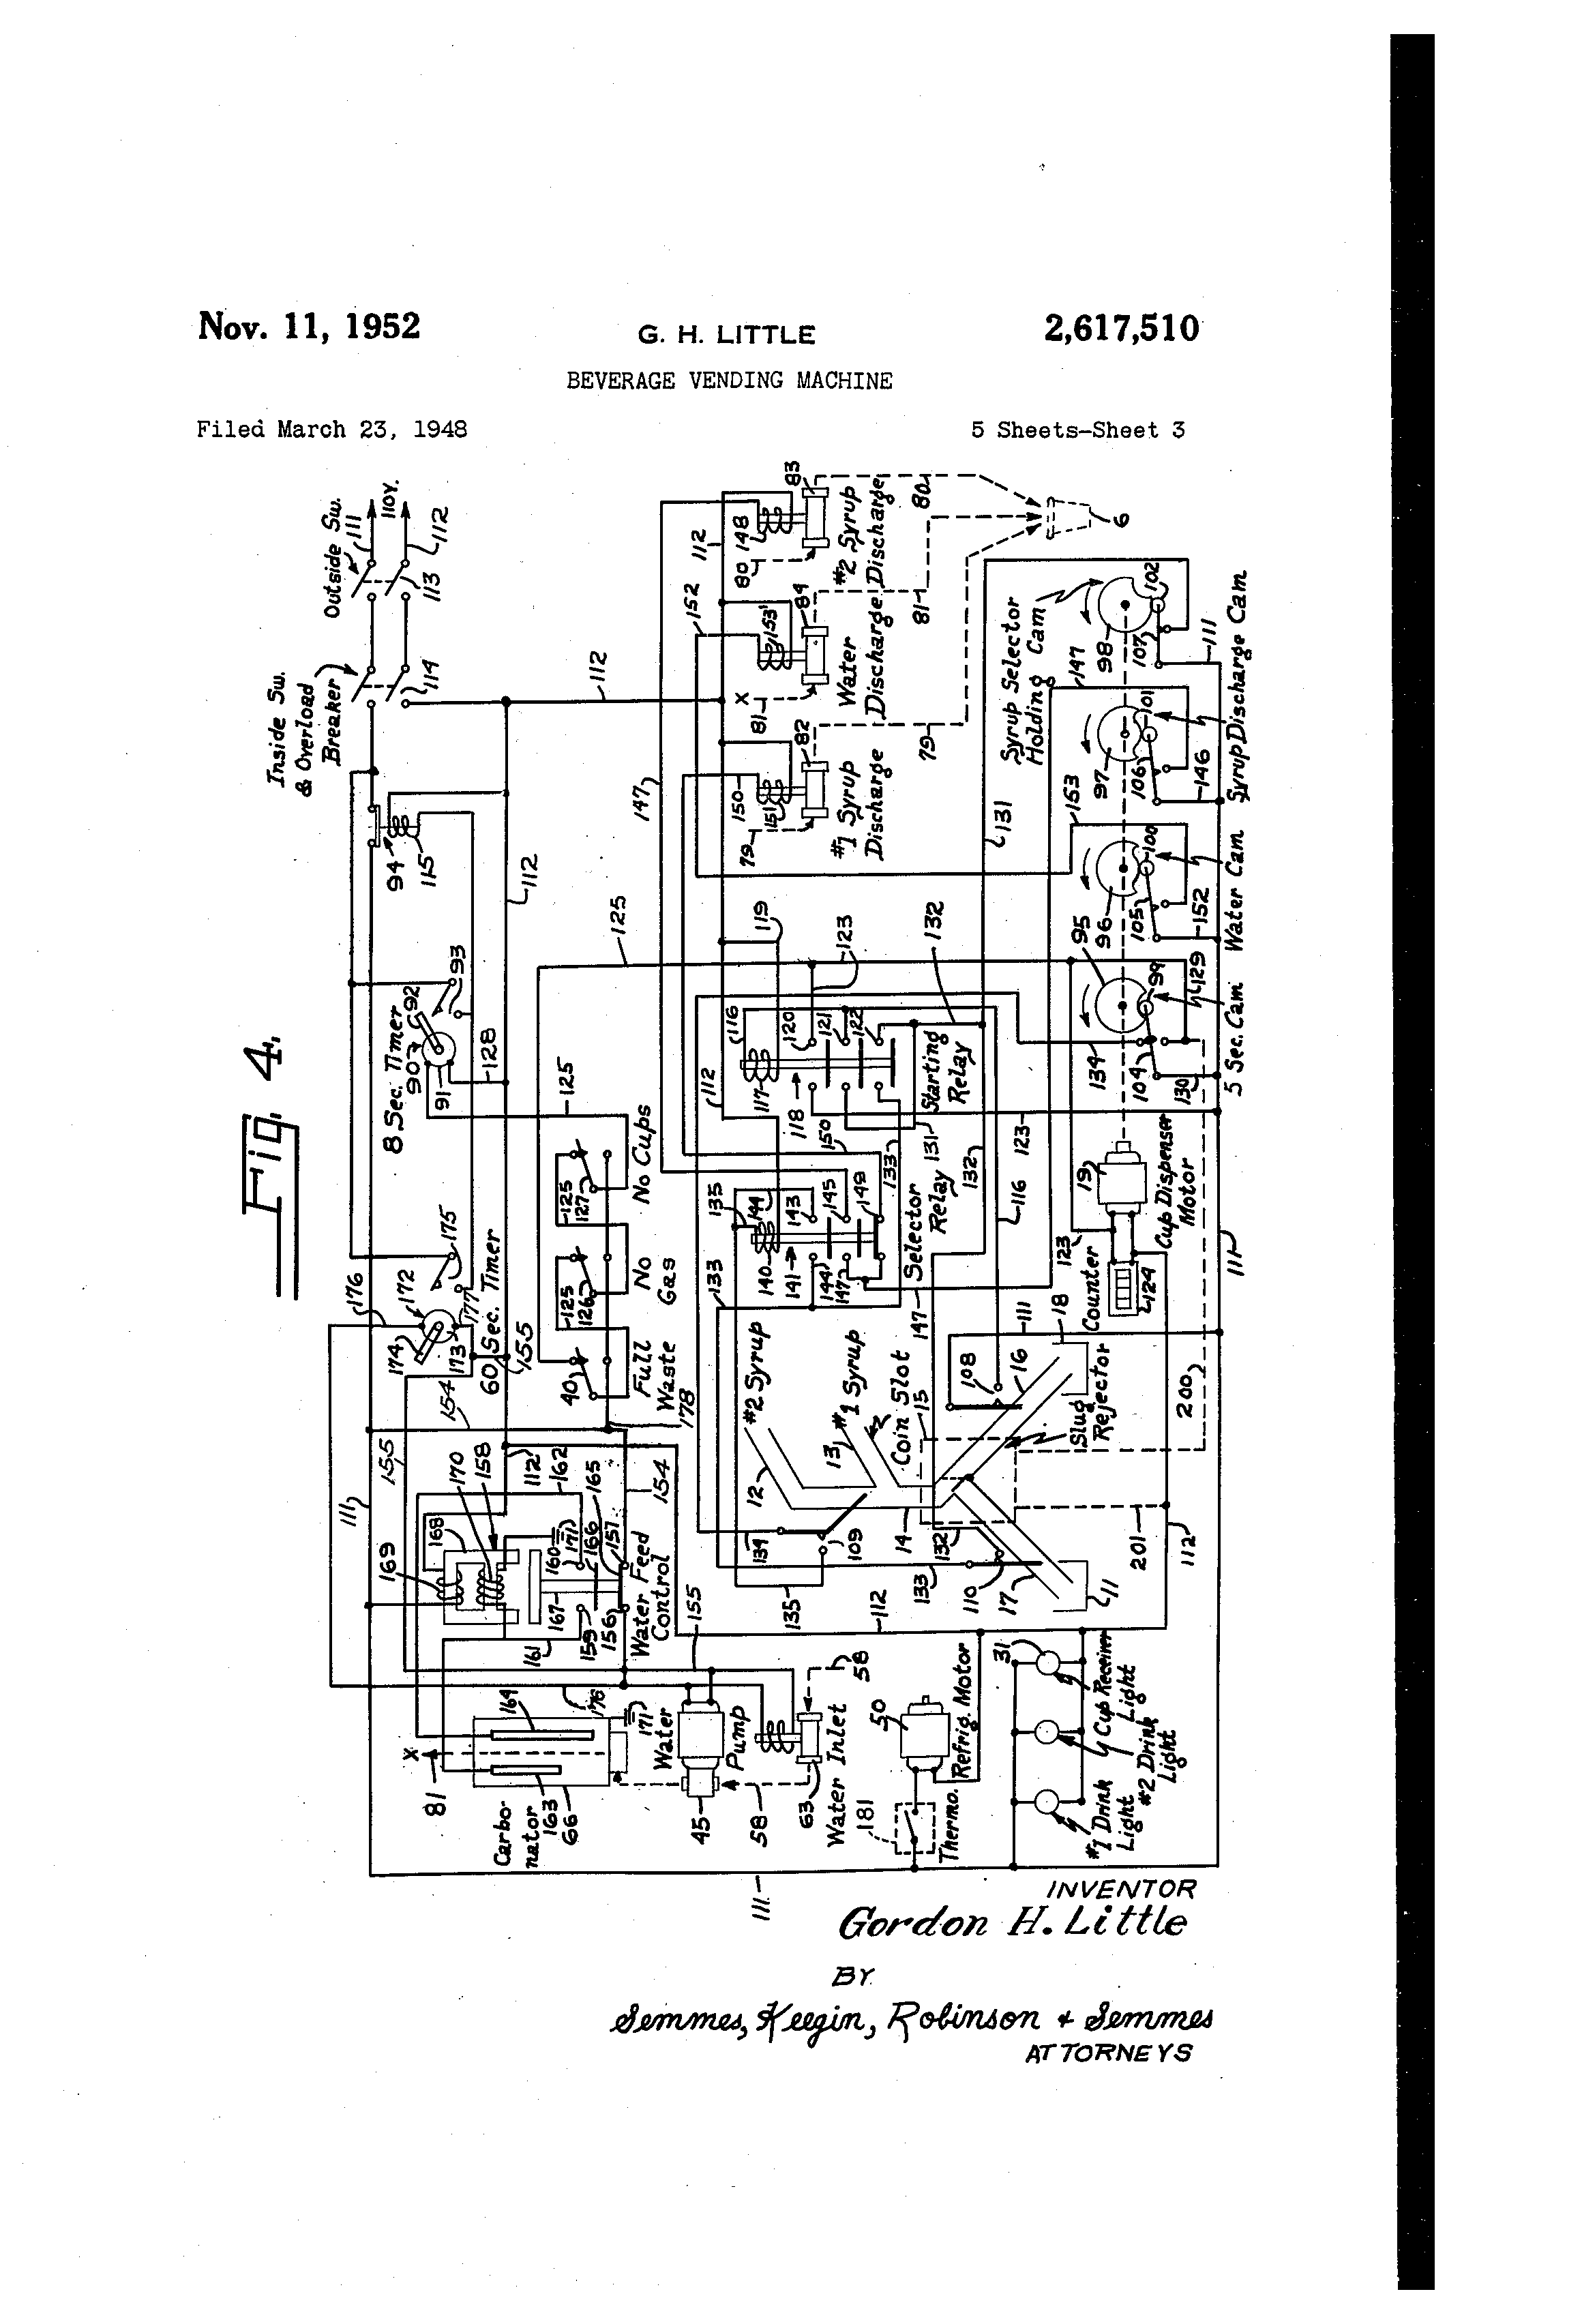 Pepsi Machine Wiring Diagram